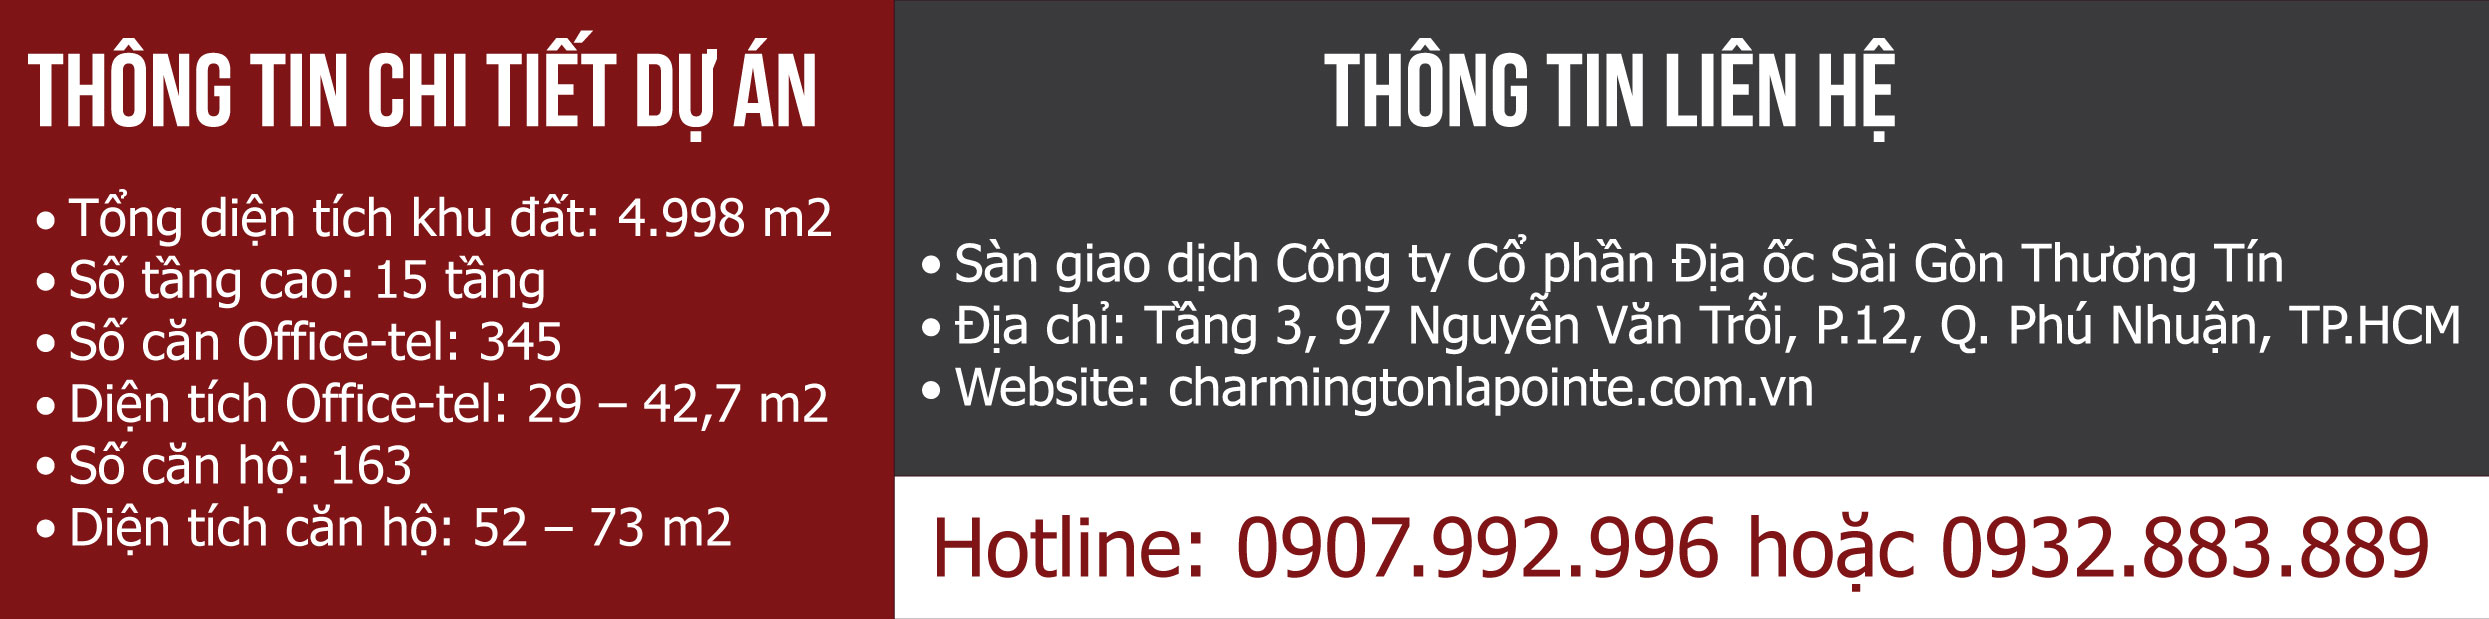 thong-tin-du-an_FN